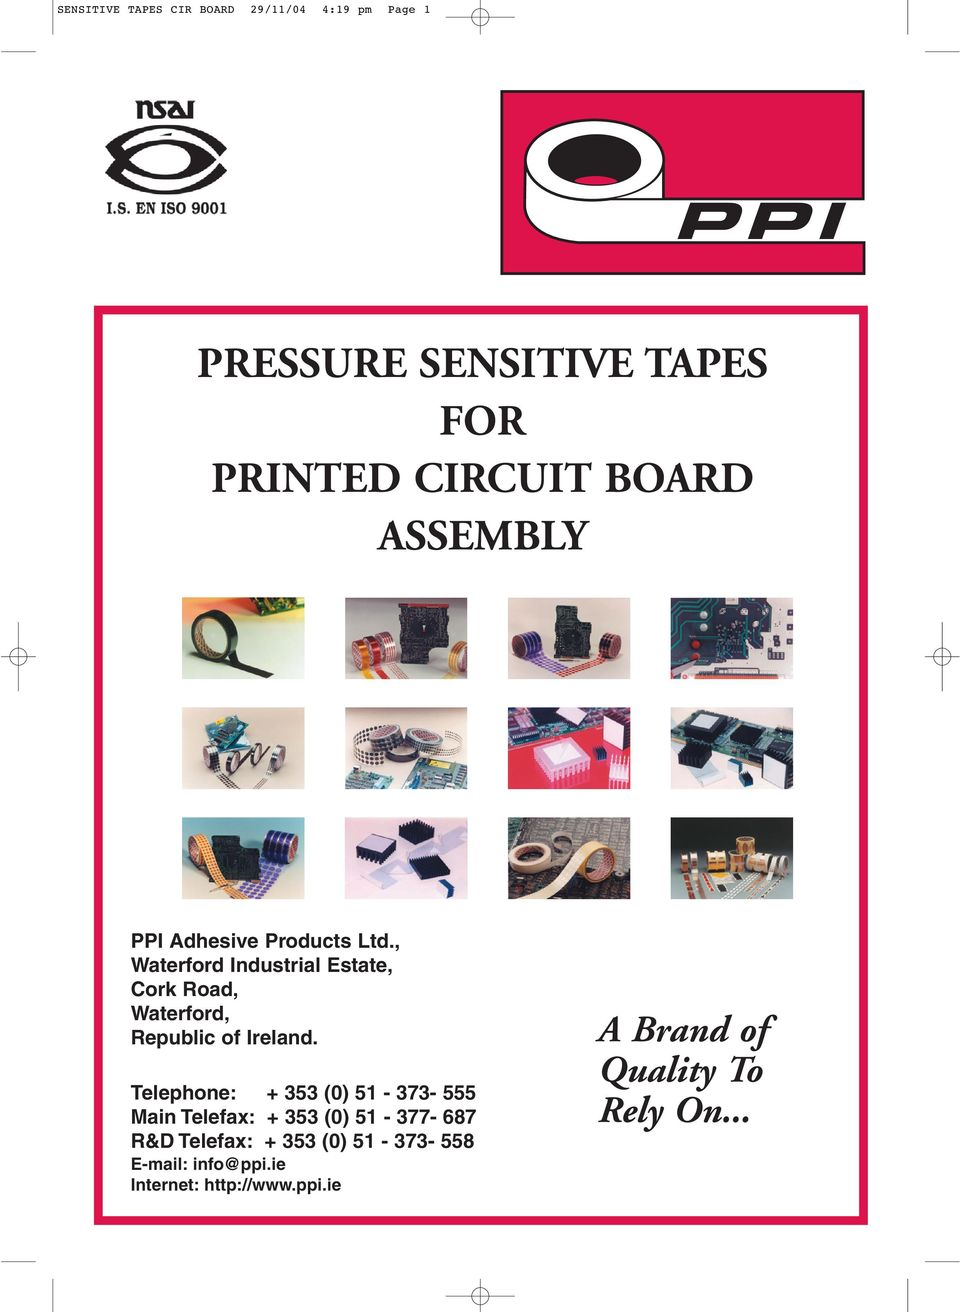 Ppi Pressure Sensitive Tapes For Printed Circuit Board Assembly A Industrial Electronic Boards Repair Kit Epoxy Glue Waterford Estate Cork Road Republic Of Ireland